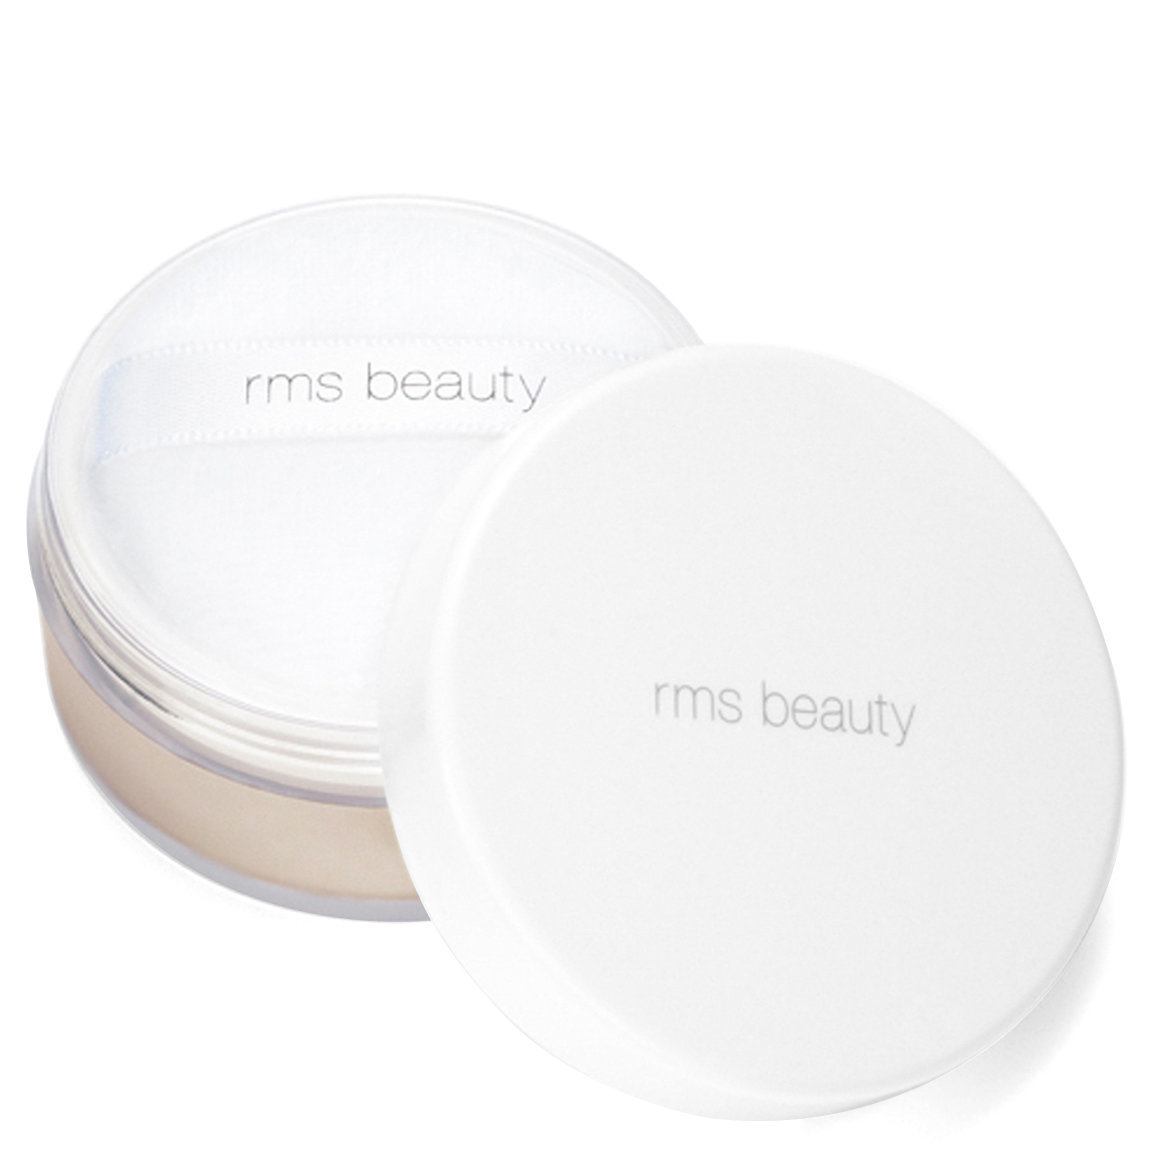 "rms beauty Tinted ""Un"" Powder 0-1 alternative view 1."